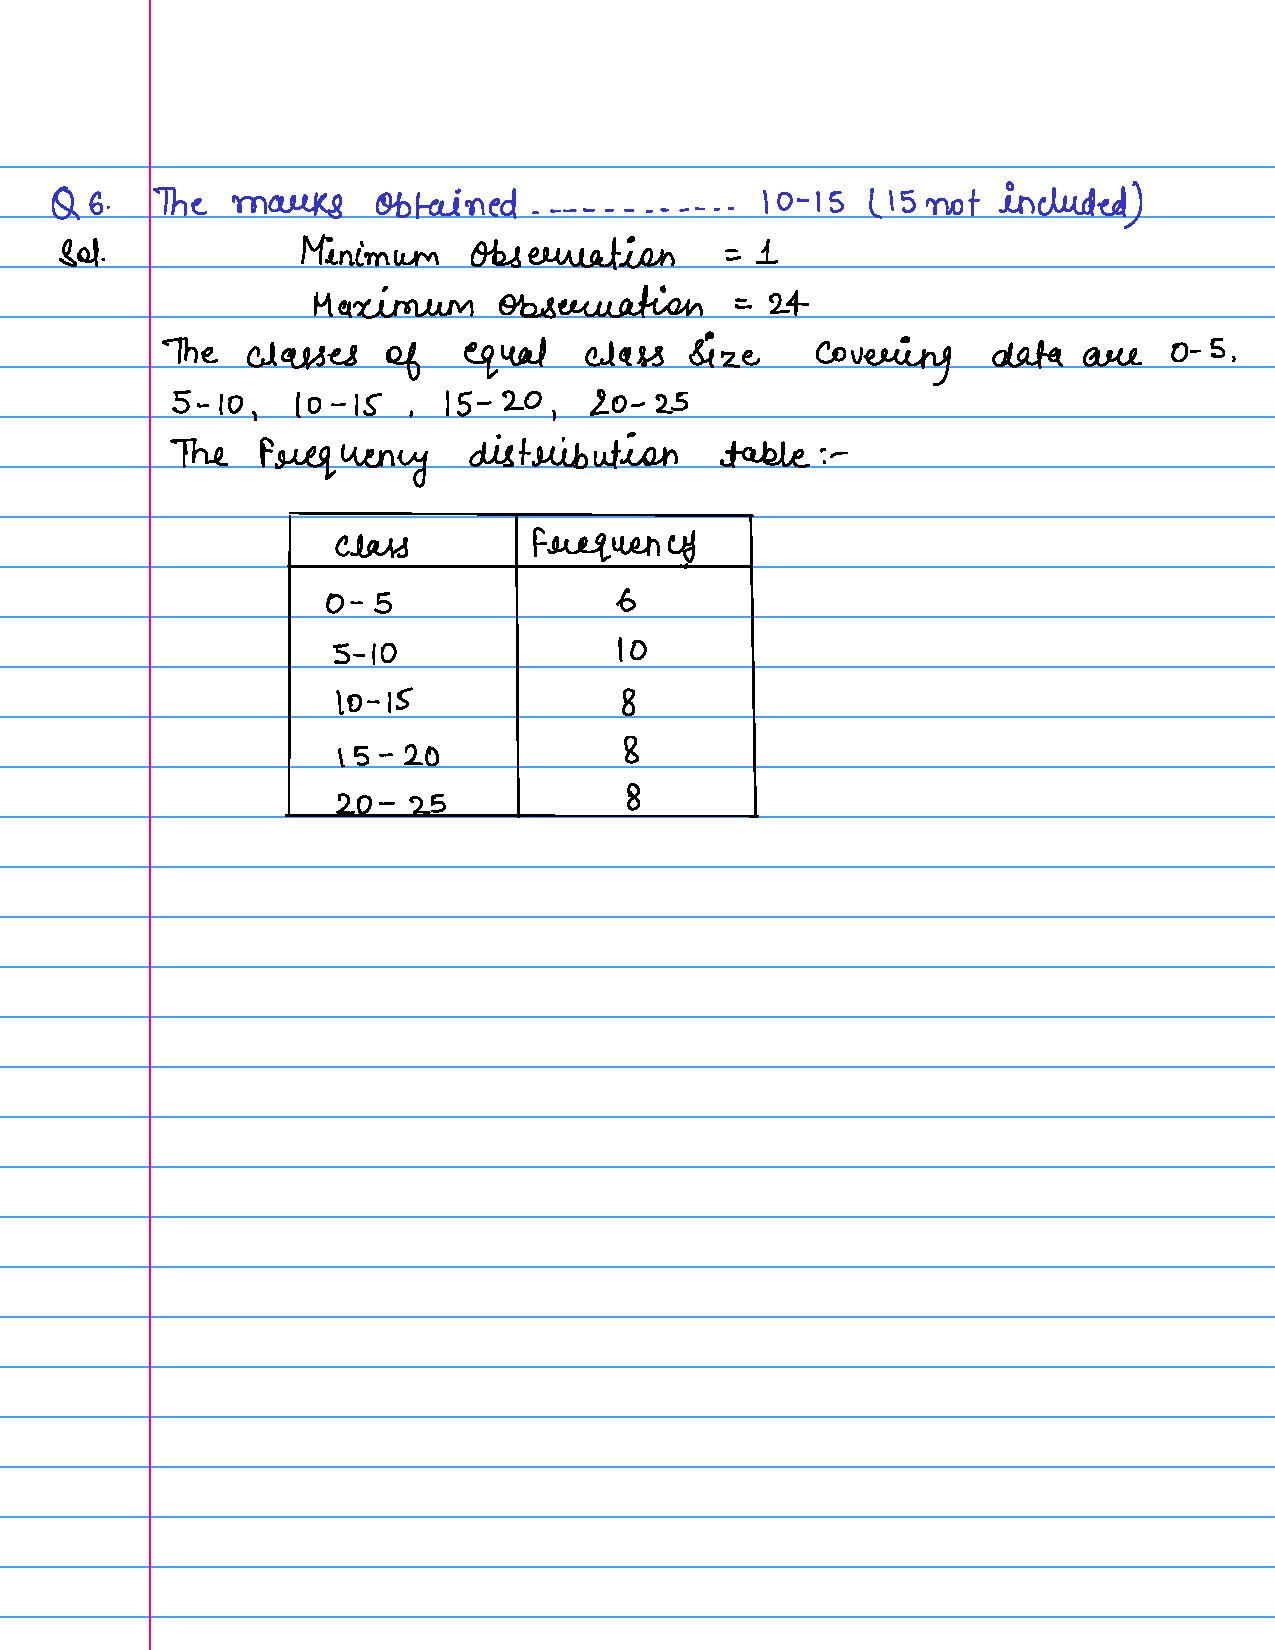 14A-page-001 (1)